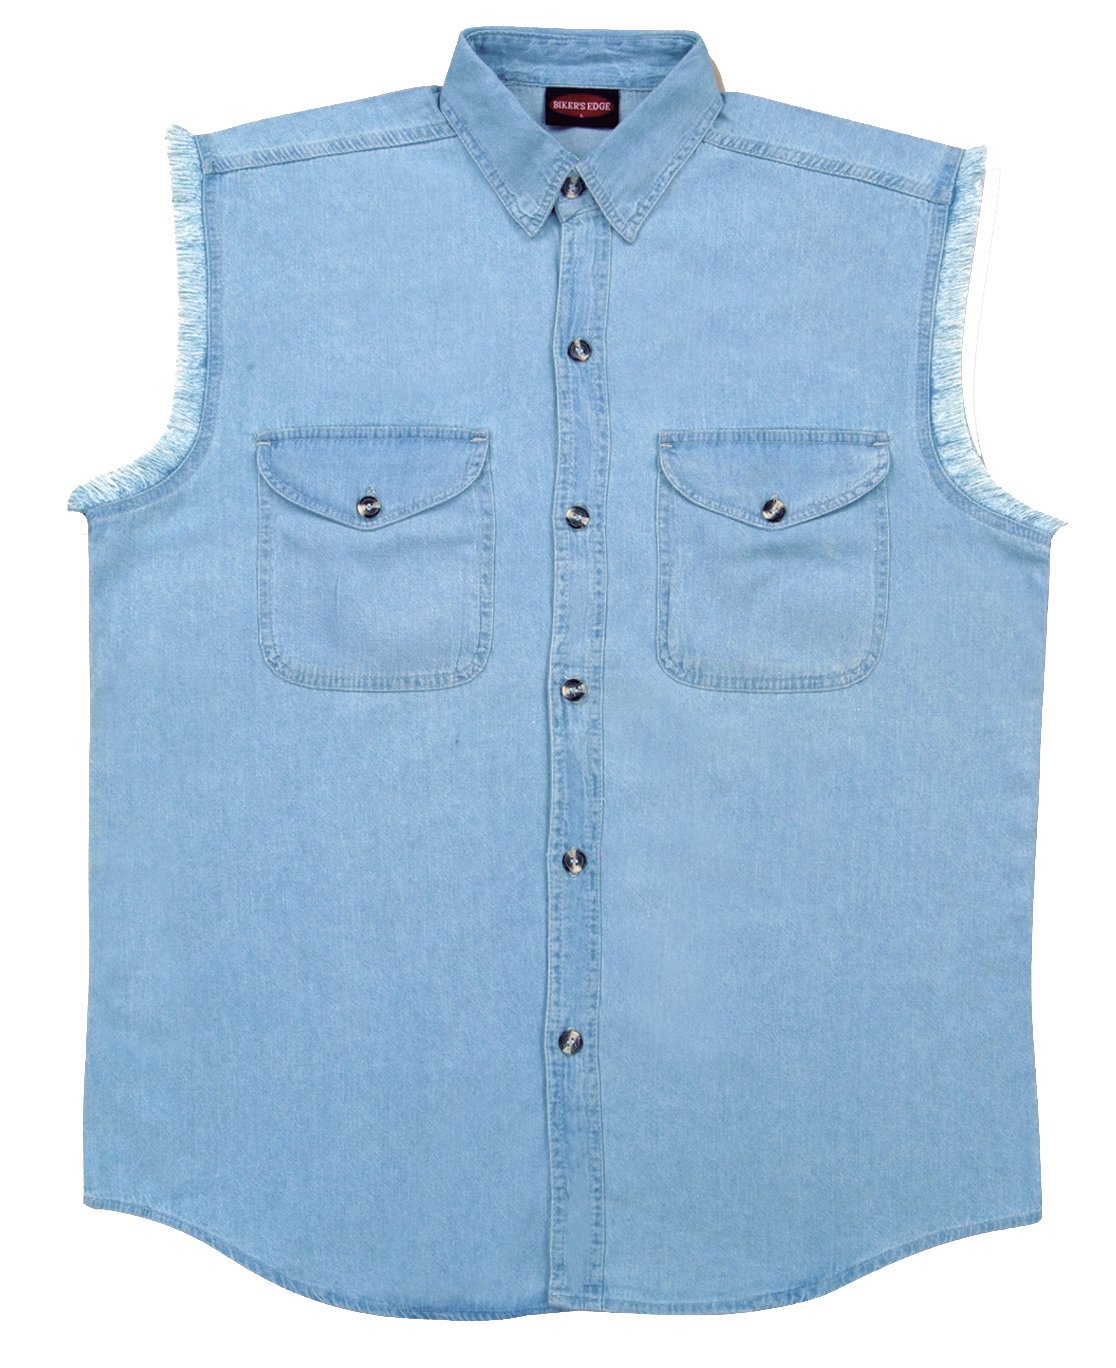 MILWAUKEE PERFORMANCE Men's Denim Sleeveless Shirt